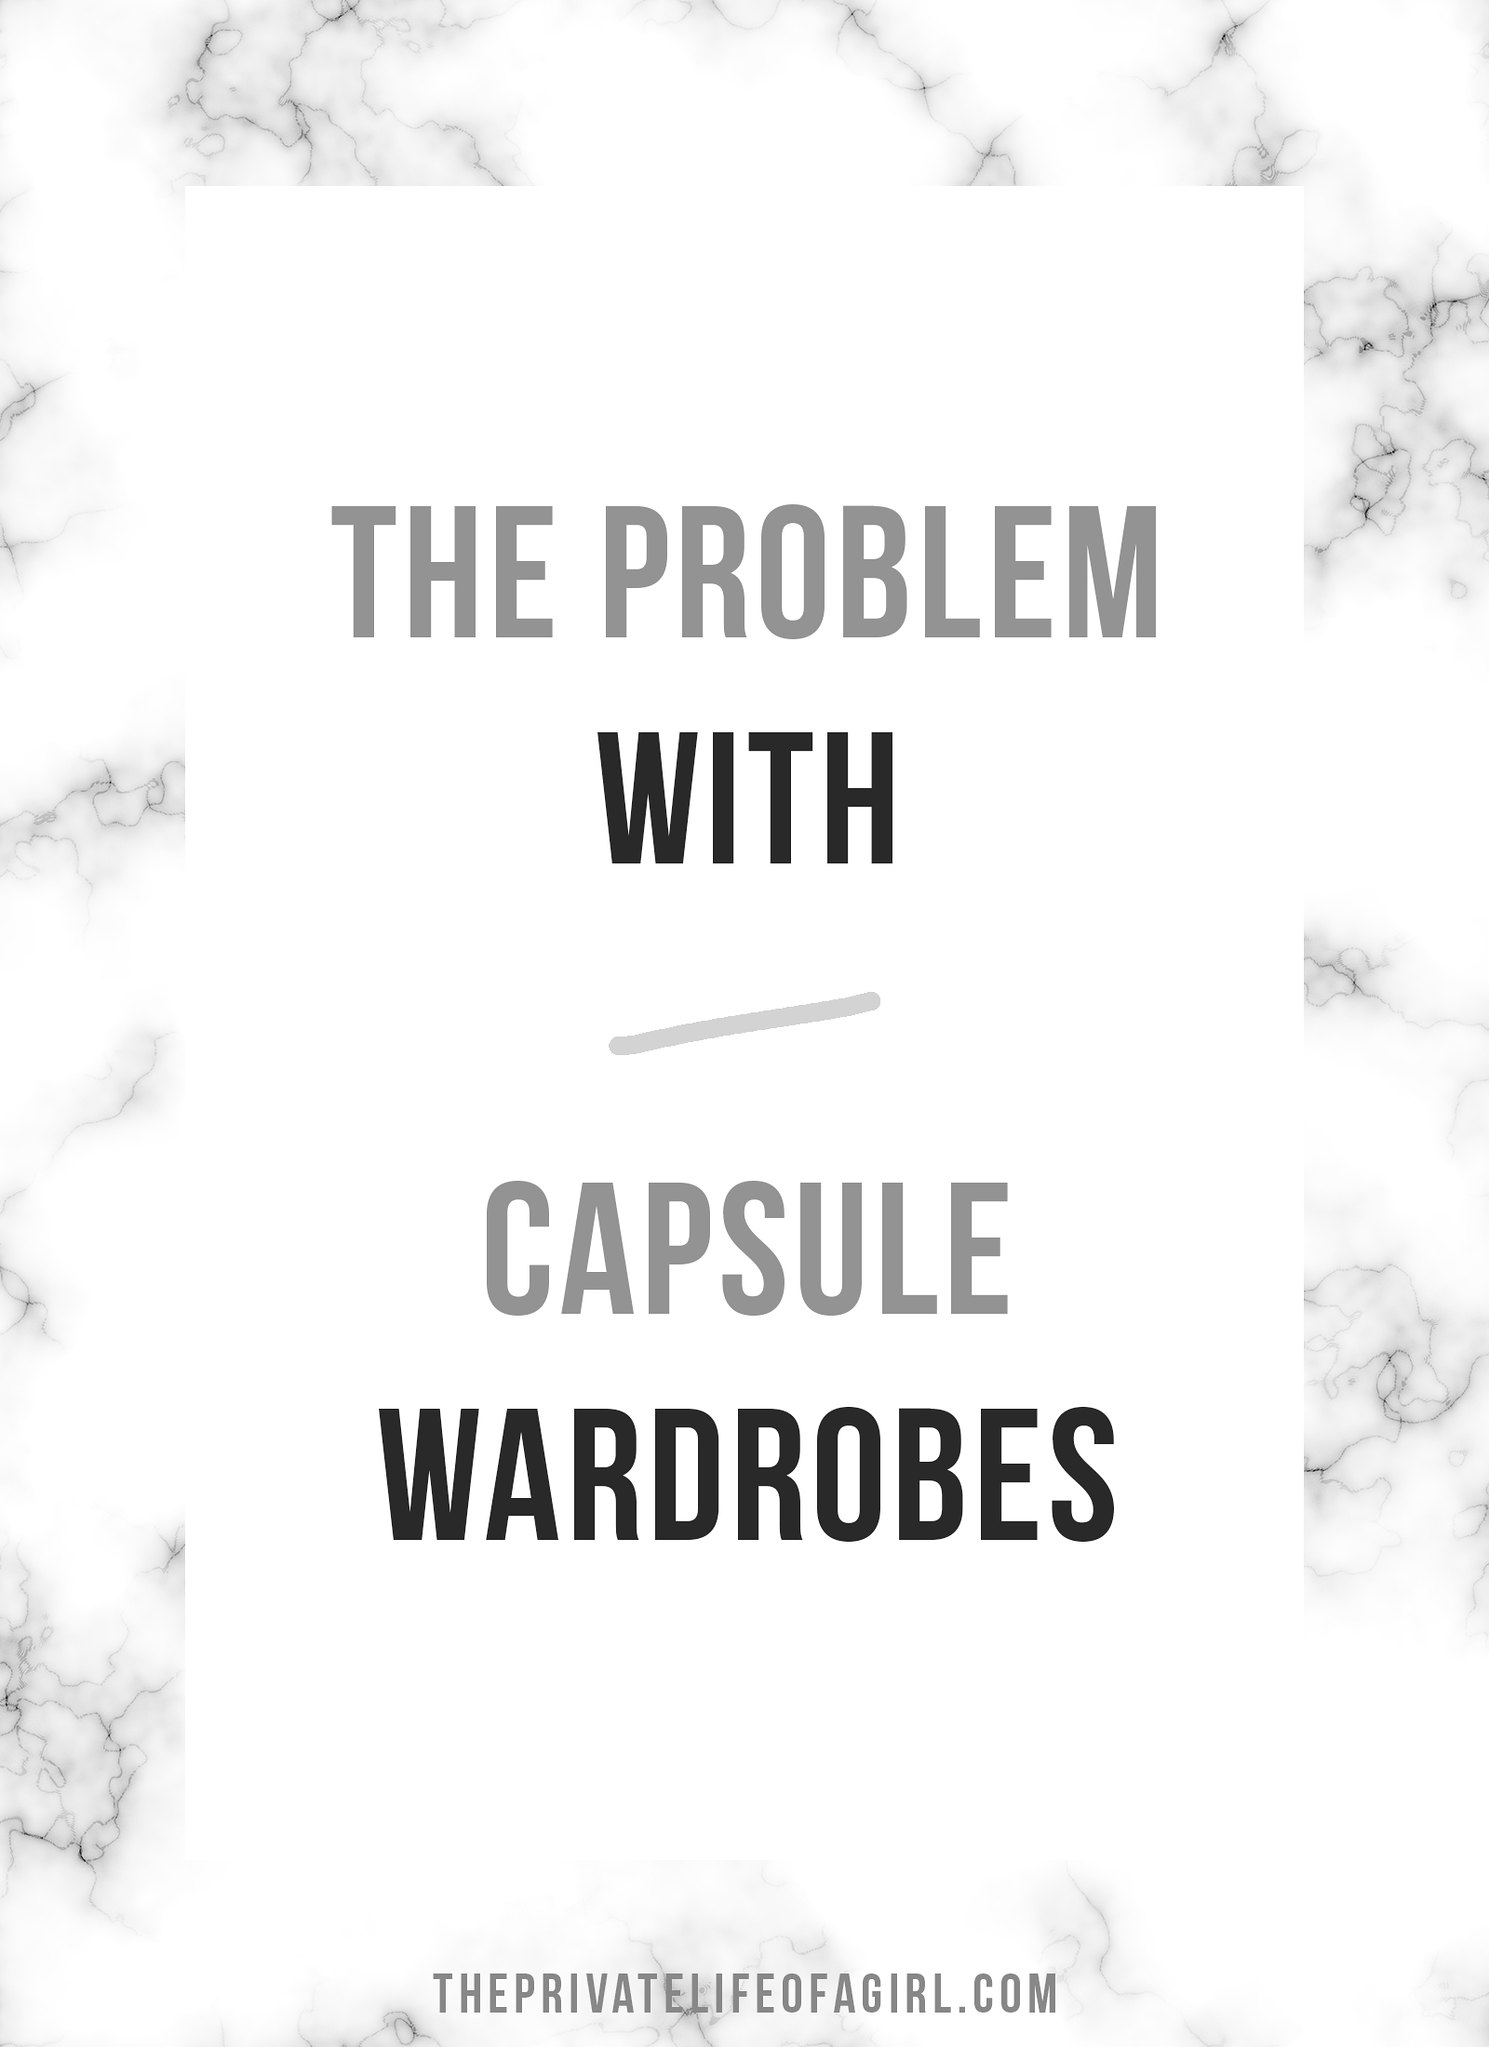 The Problem With Capsule Wardrobes